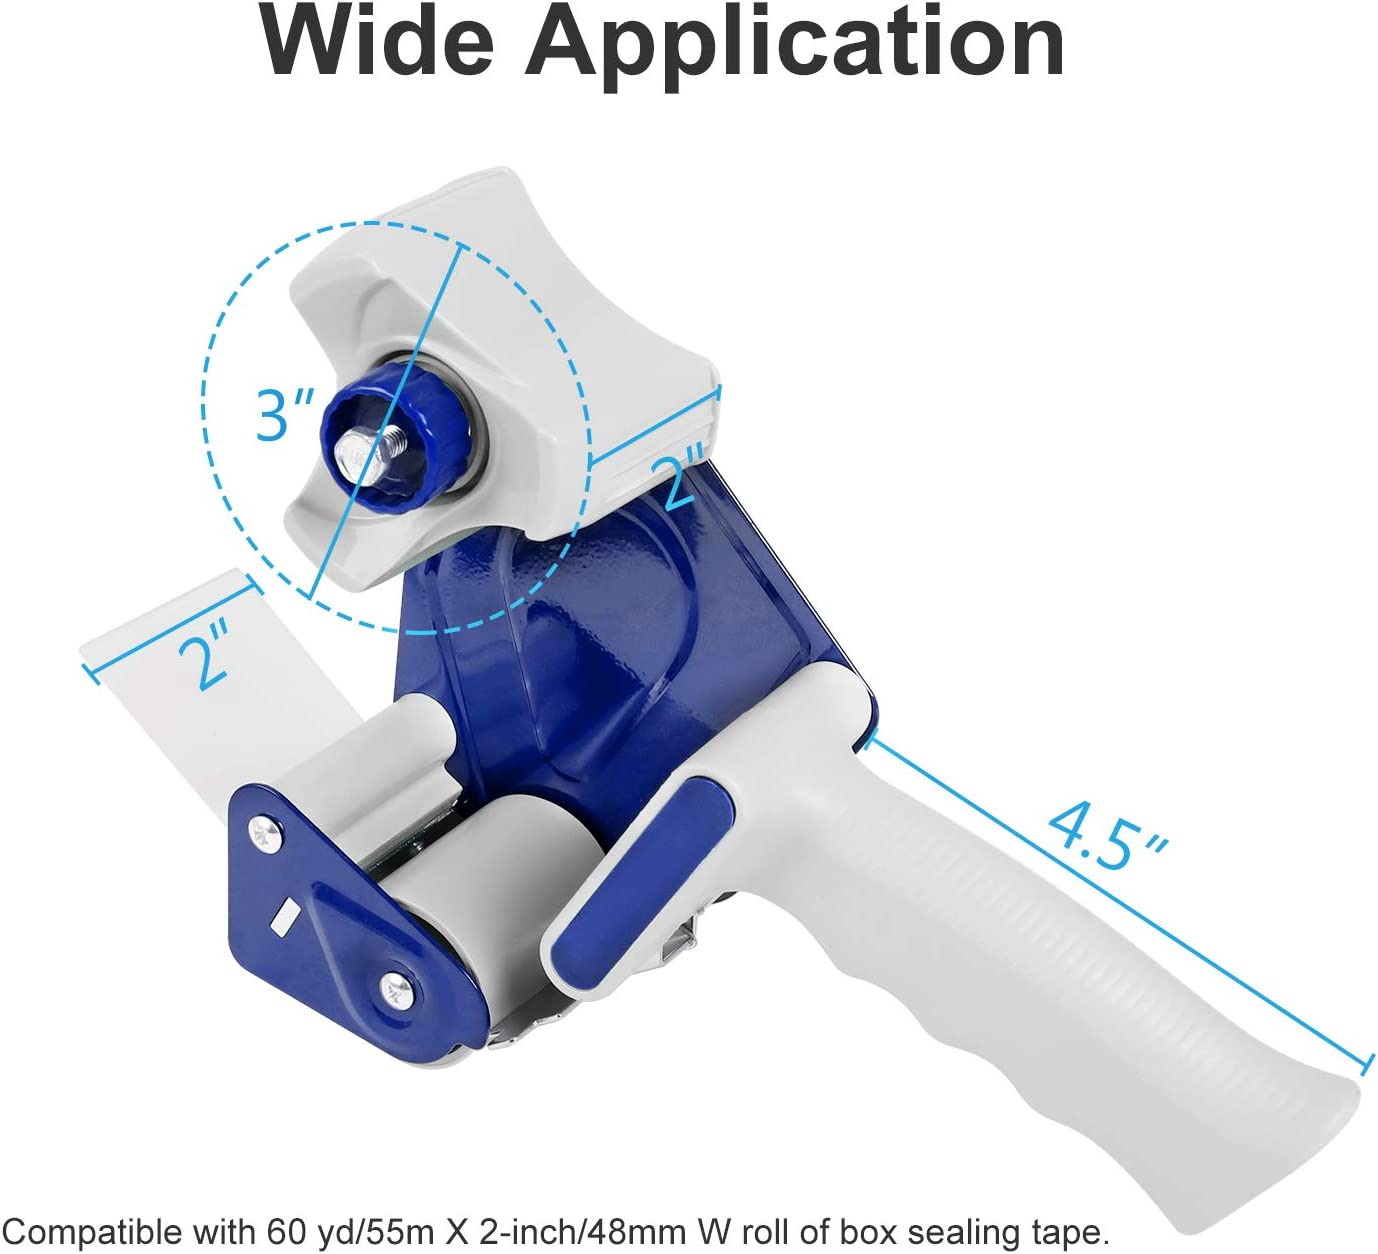 JARLINK Packing Tape Dispenser Gun (2 Pack) with 2 Rolls Tape, 2 inches Lightweight Industrial Side Loading Tape Dispenser for Shipping Packaging Moving Sealing (Grey & Blue) : Office Products